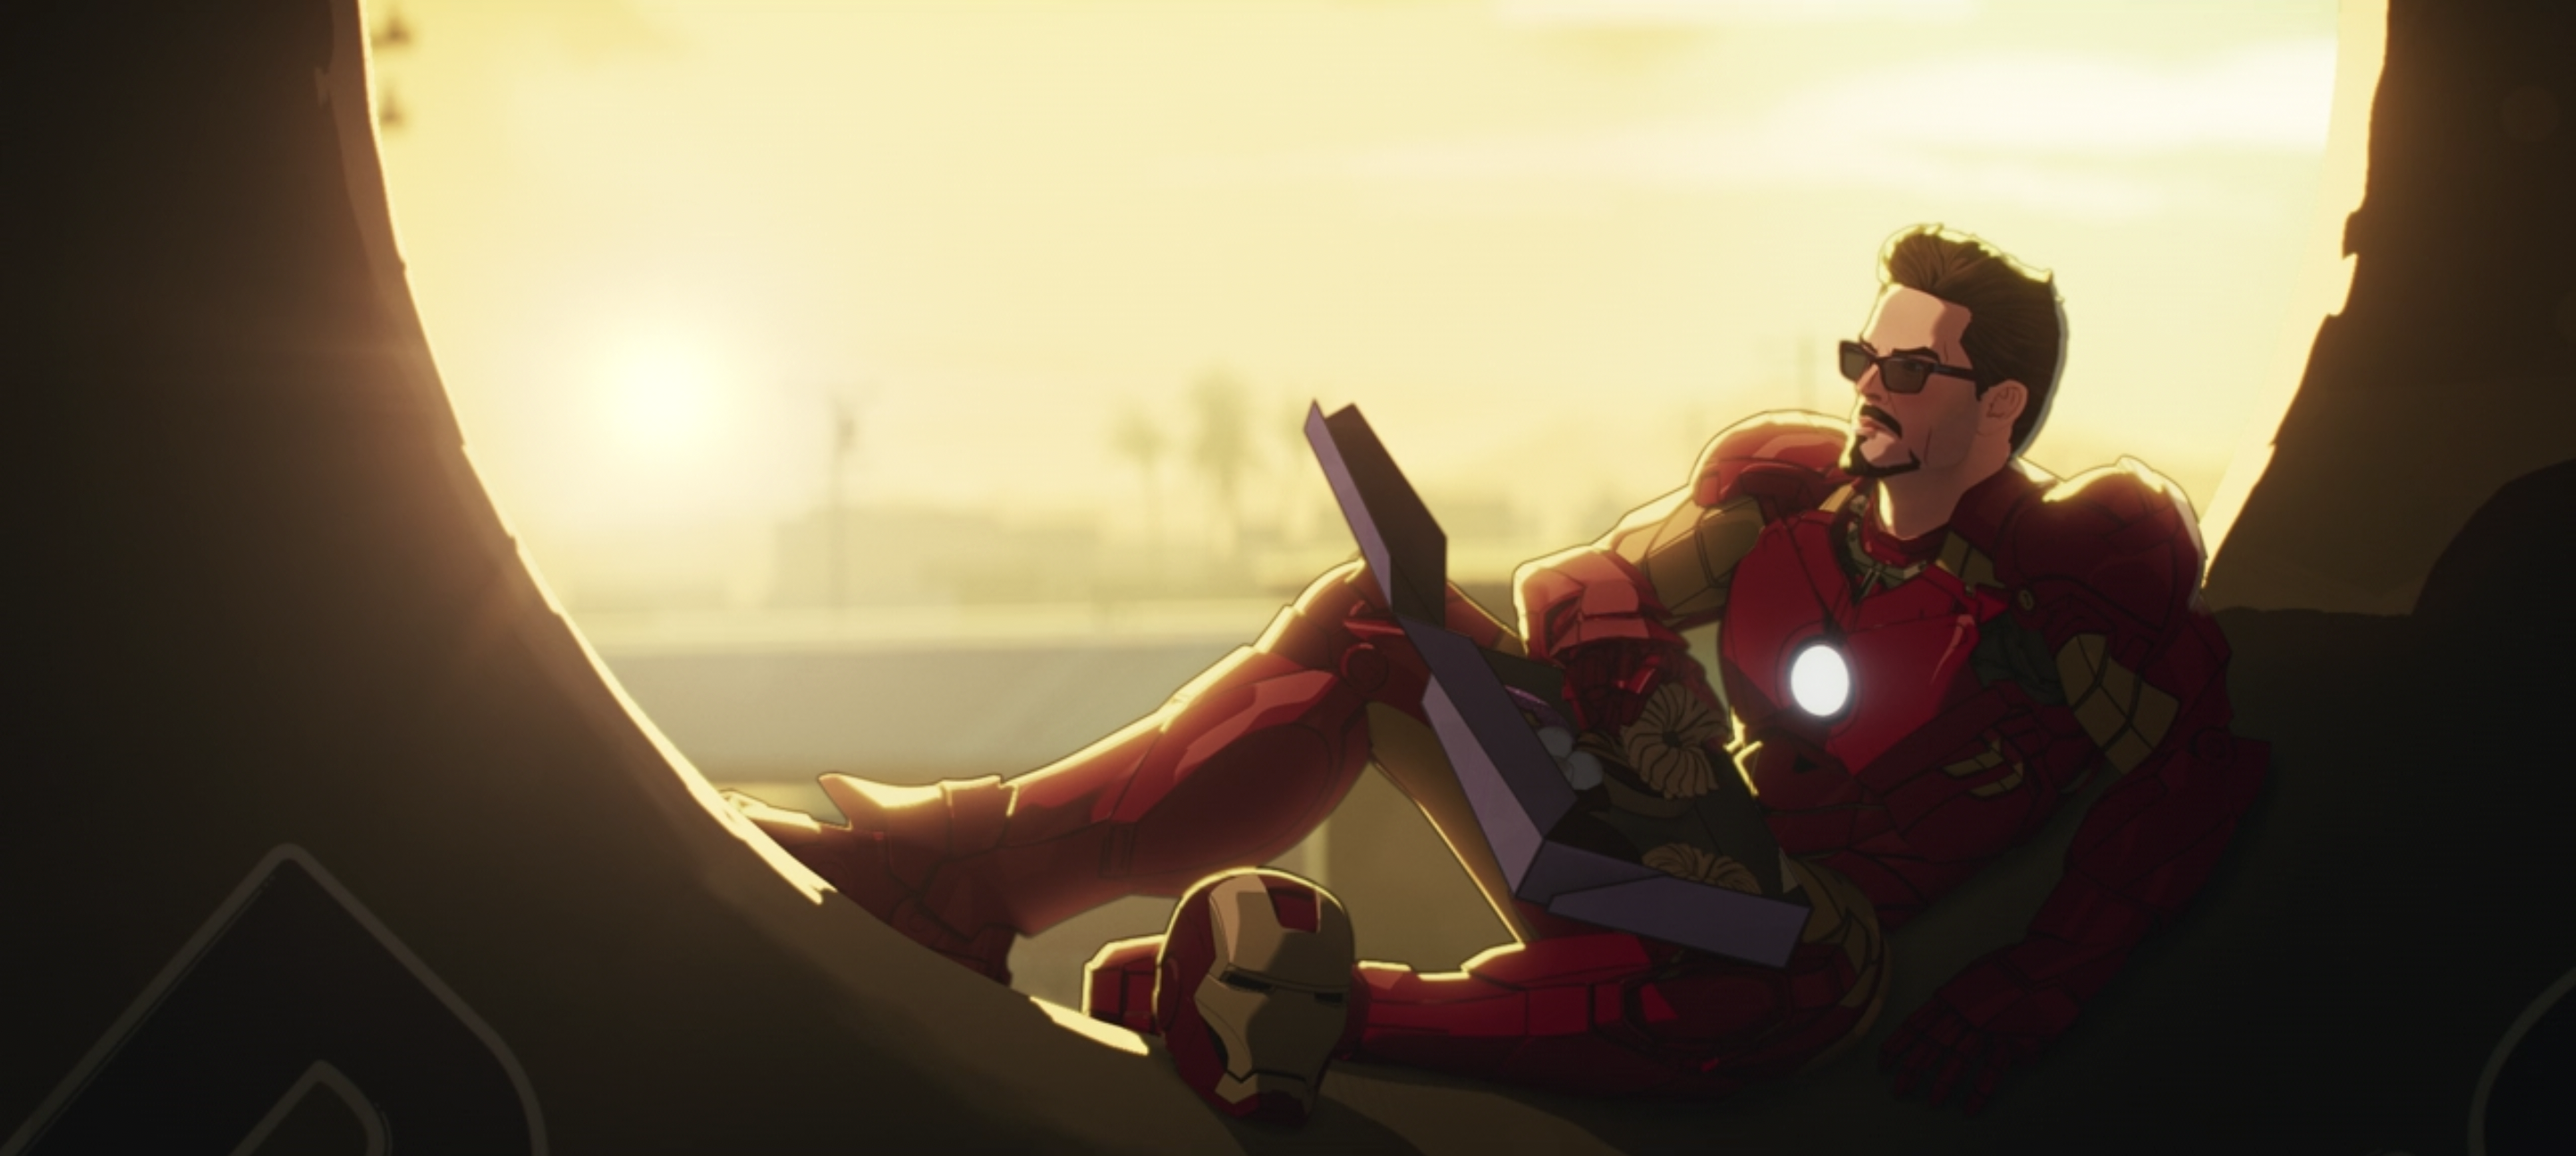 Iron Man Reclines inside a giant doughnut in What If...?